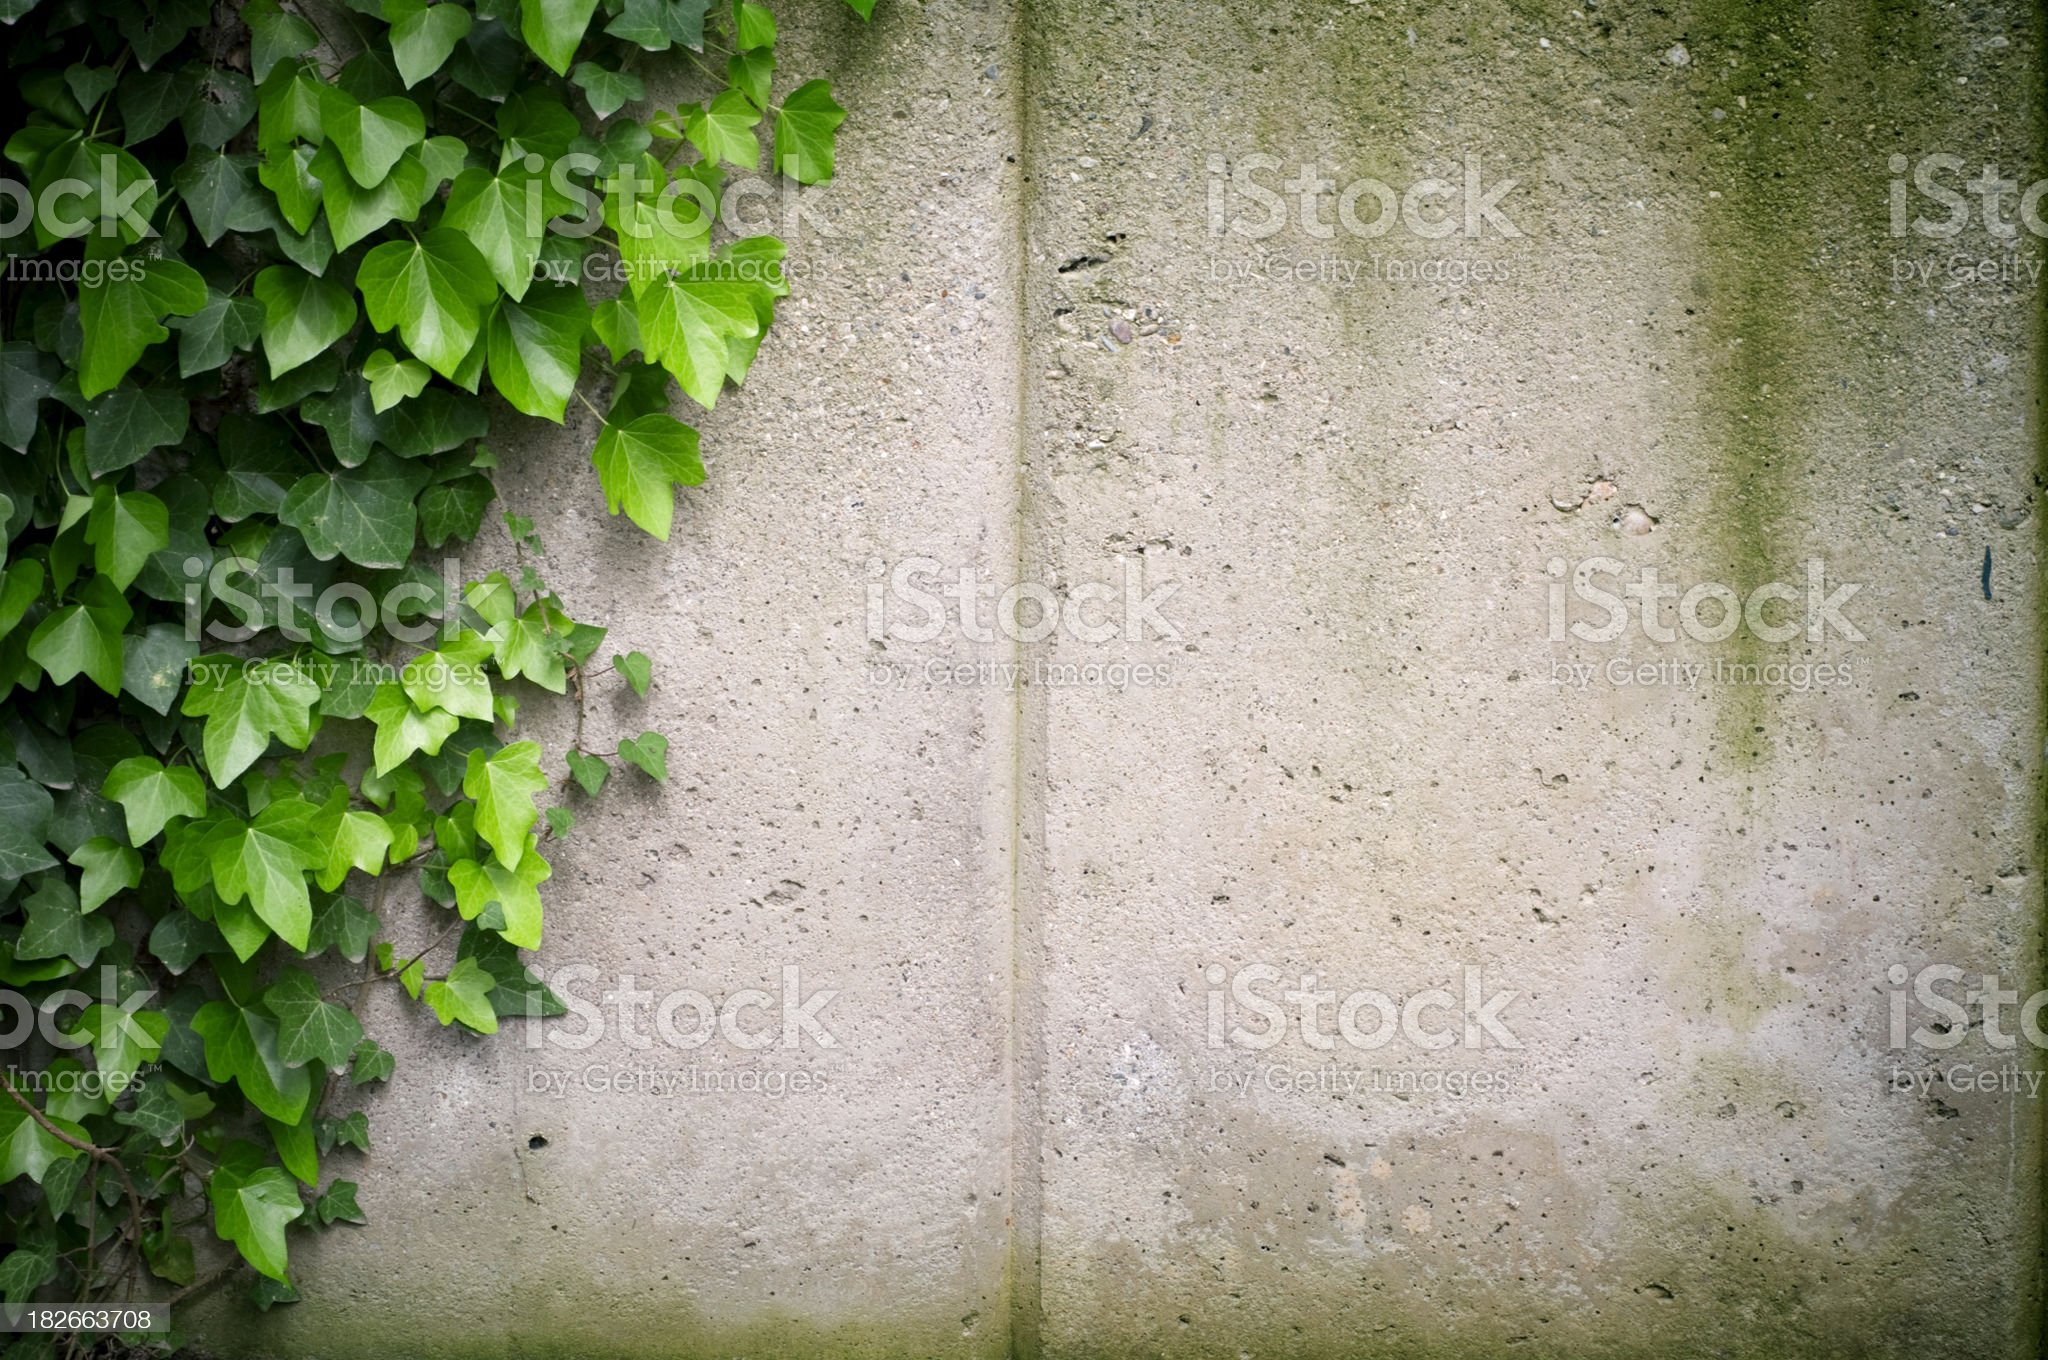 Ivy on concrete wall royalty-free stock photo